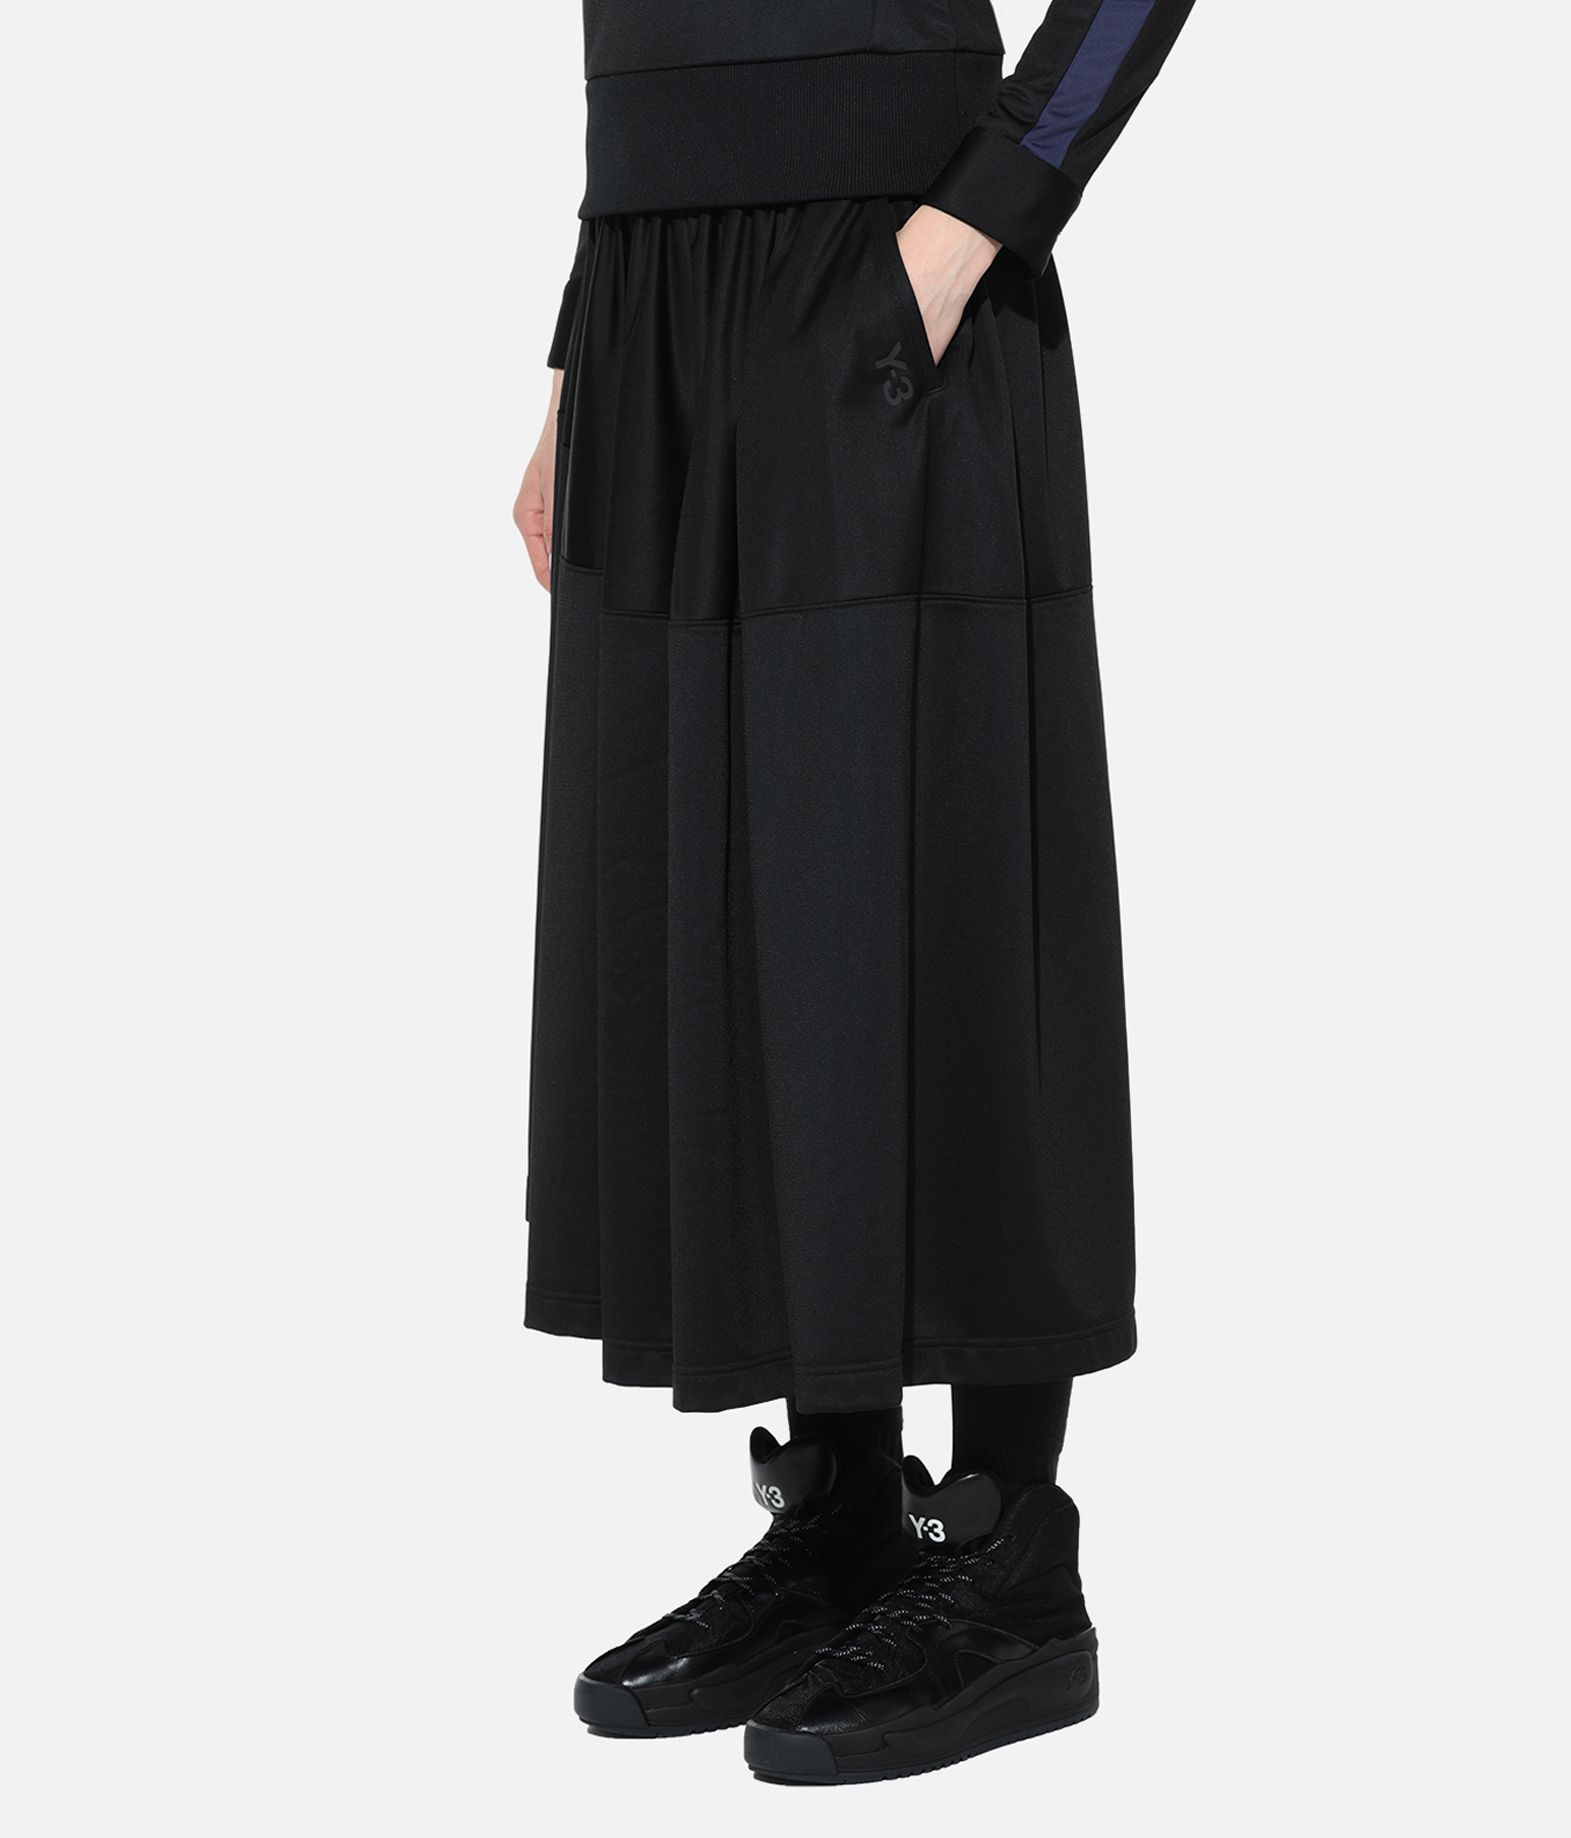 Y-3 Y-3 Firebird Track Skirt 3/4 length skirt Woman e